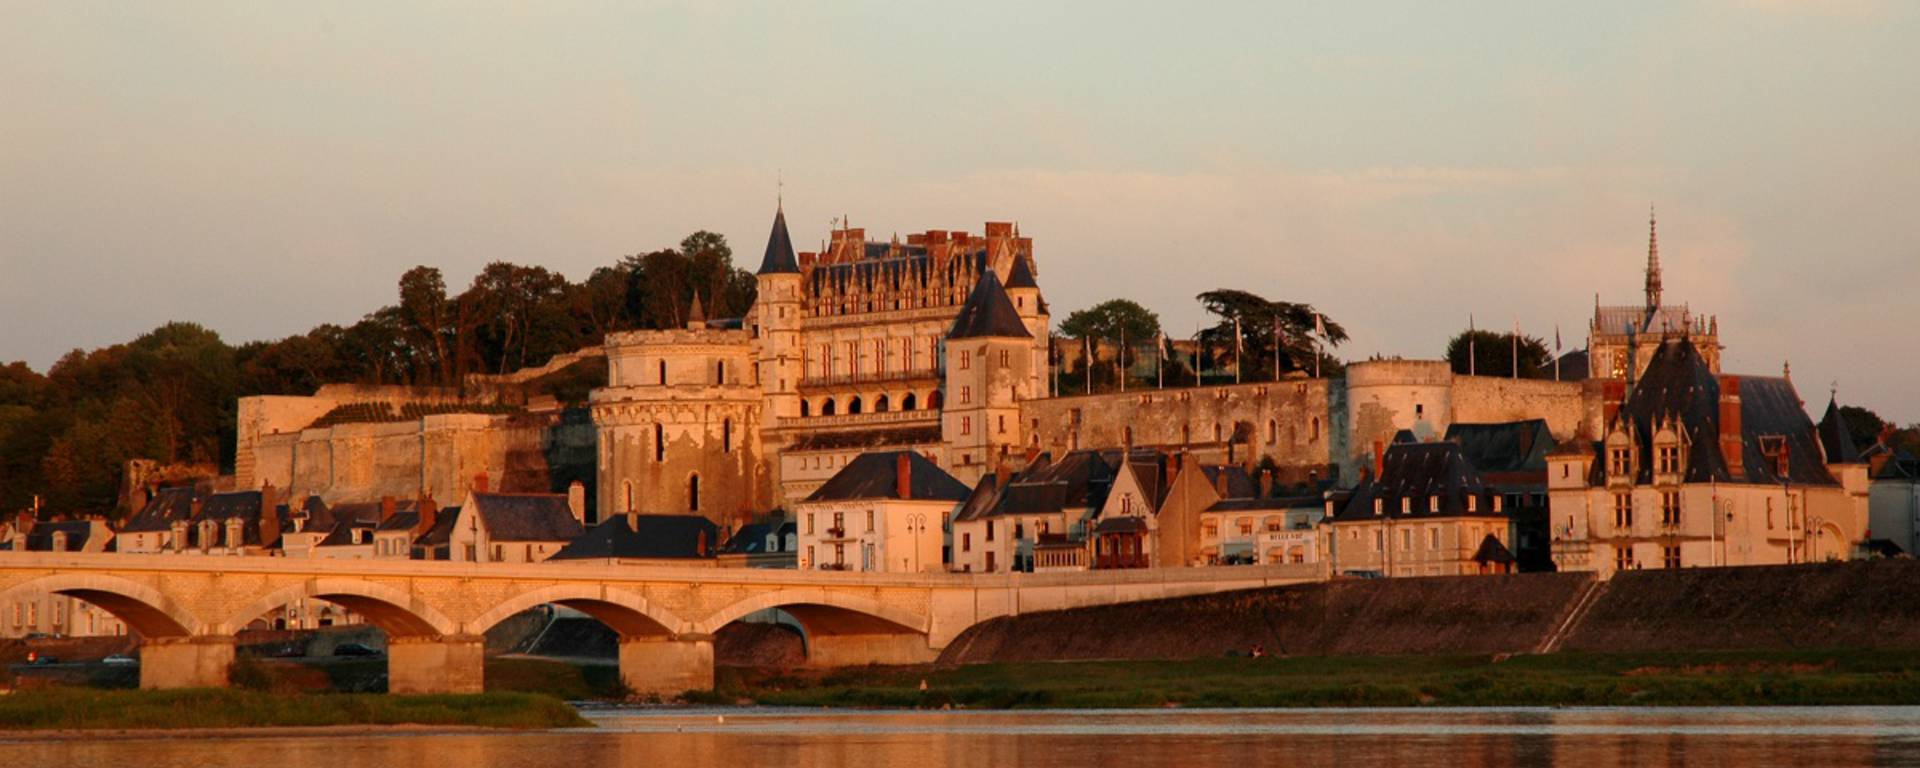 General view of the Château d'Amboise. © JF Le Scour